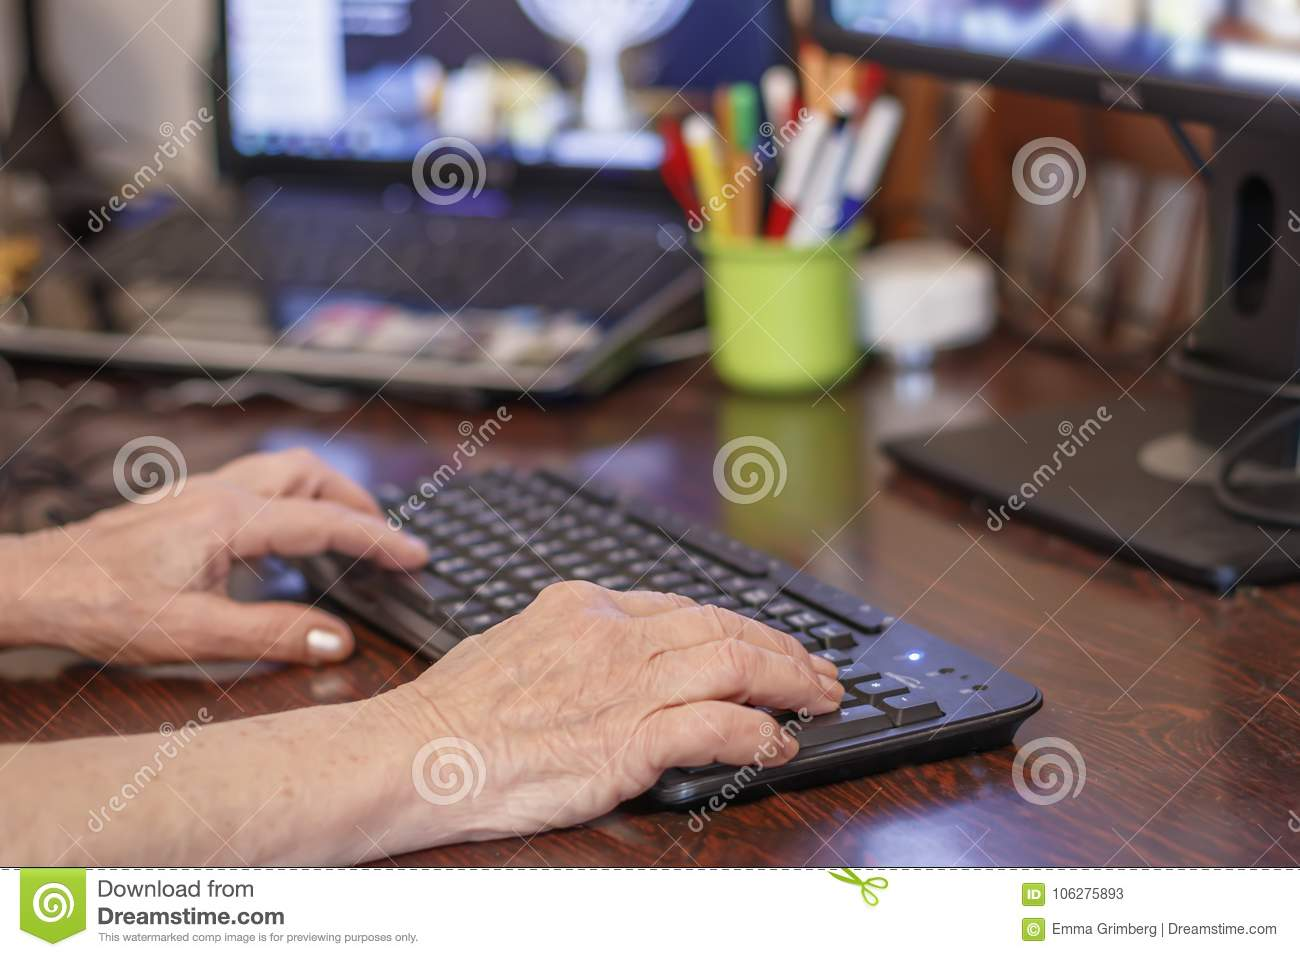 Hands of an elderly woman typing on a pc keyboard